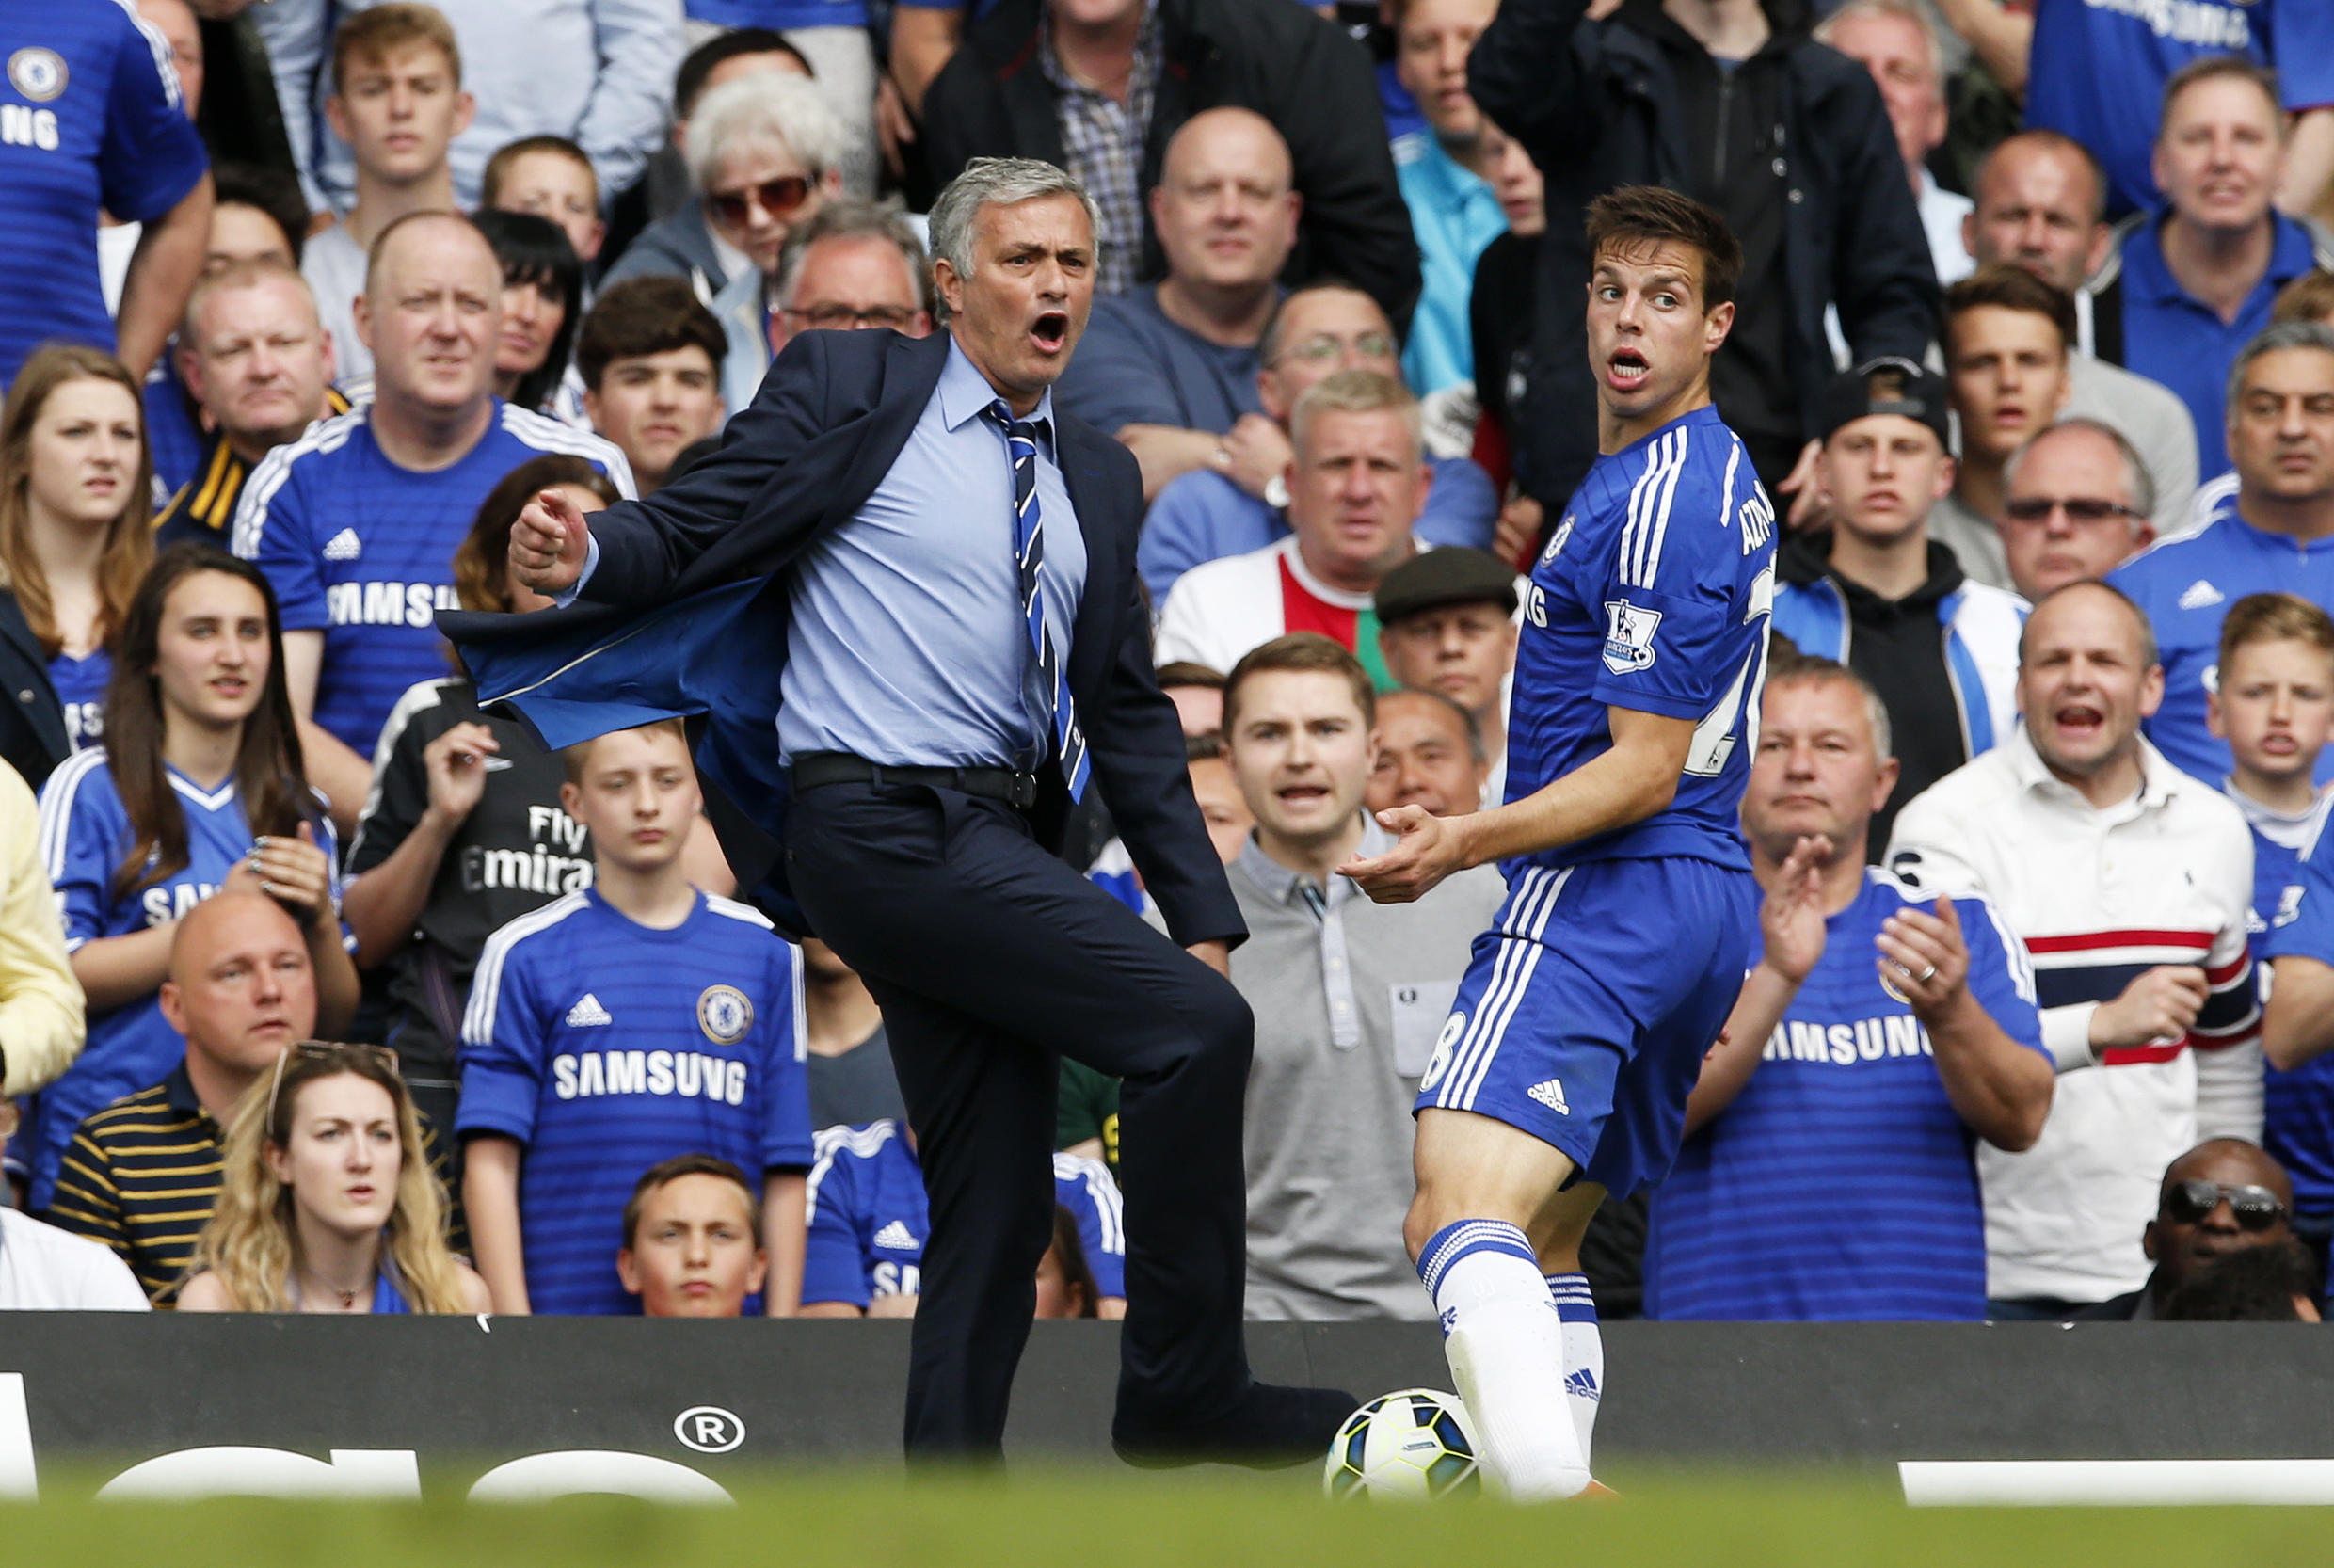 Chelsea manager Jose Mourinho wasn't happy about Fabregas being sent off in the match against West Bromwich Albion.